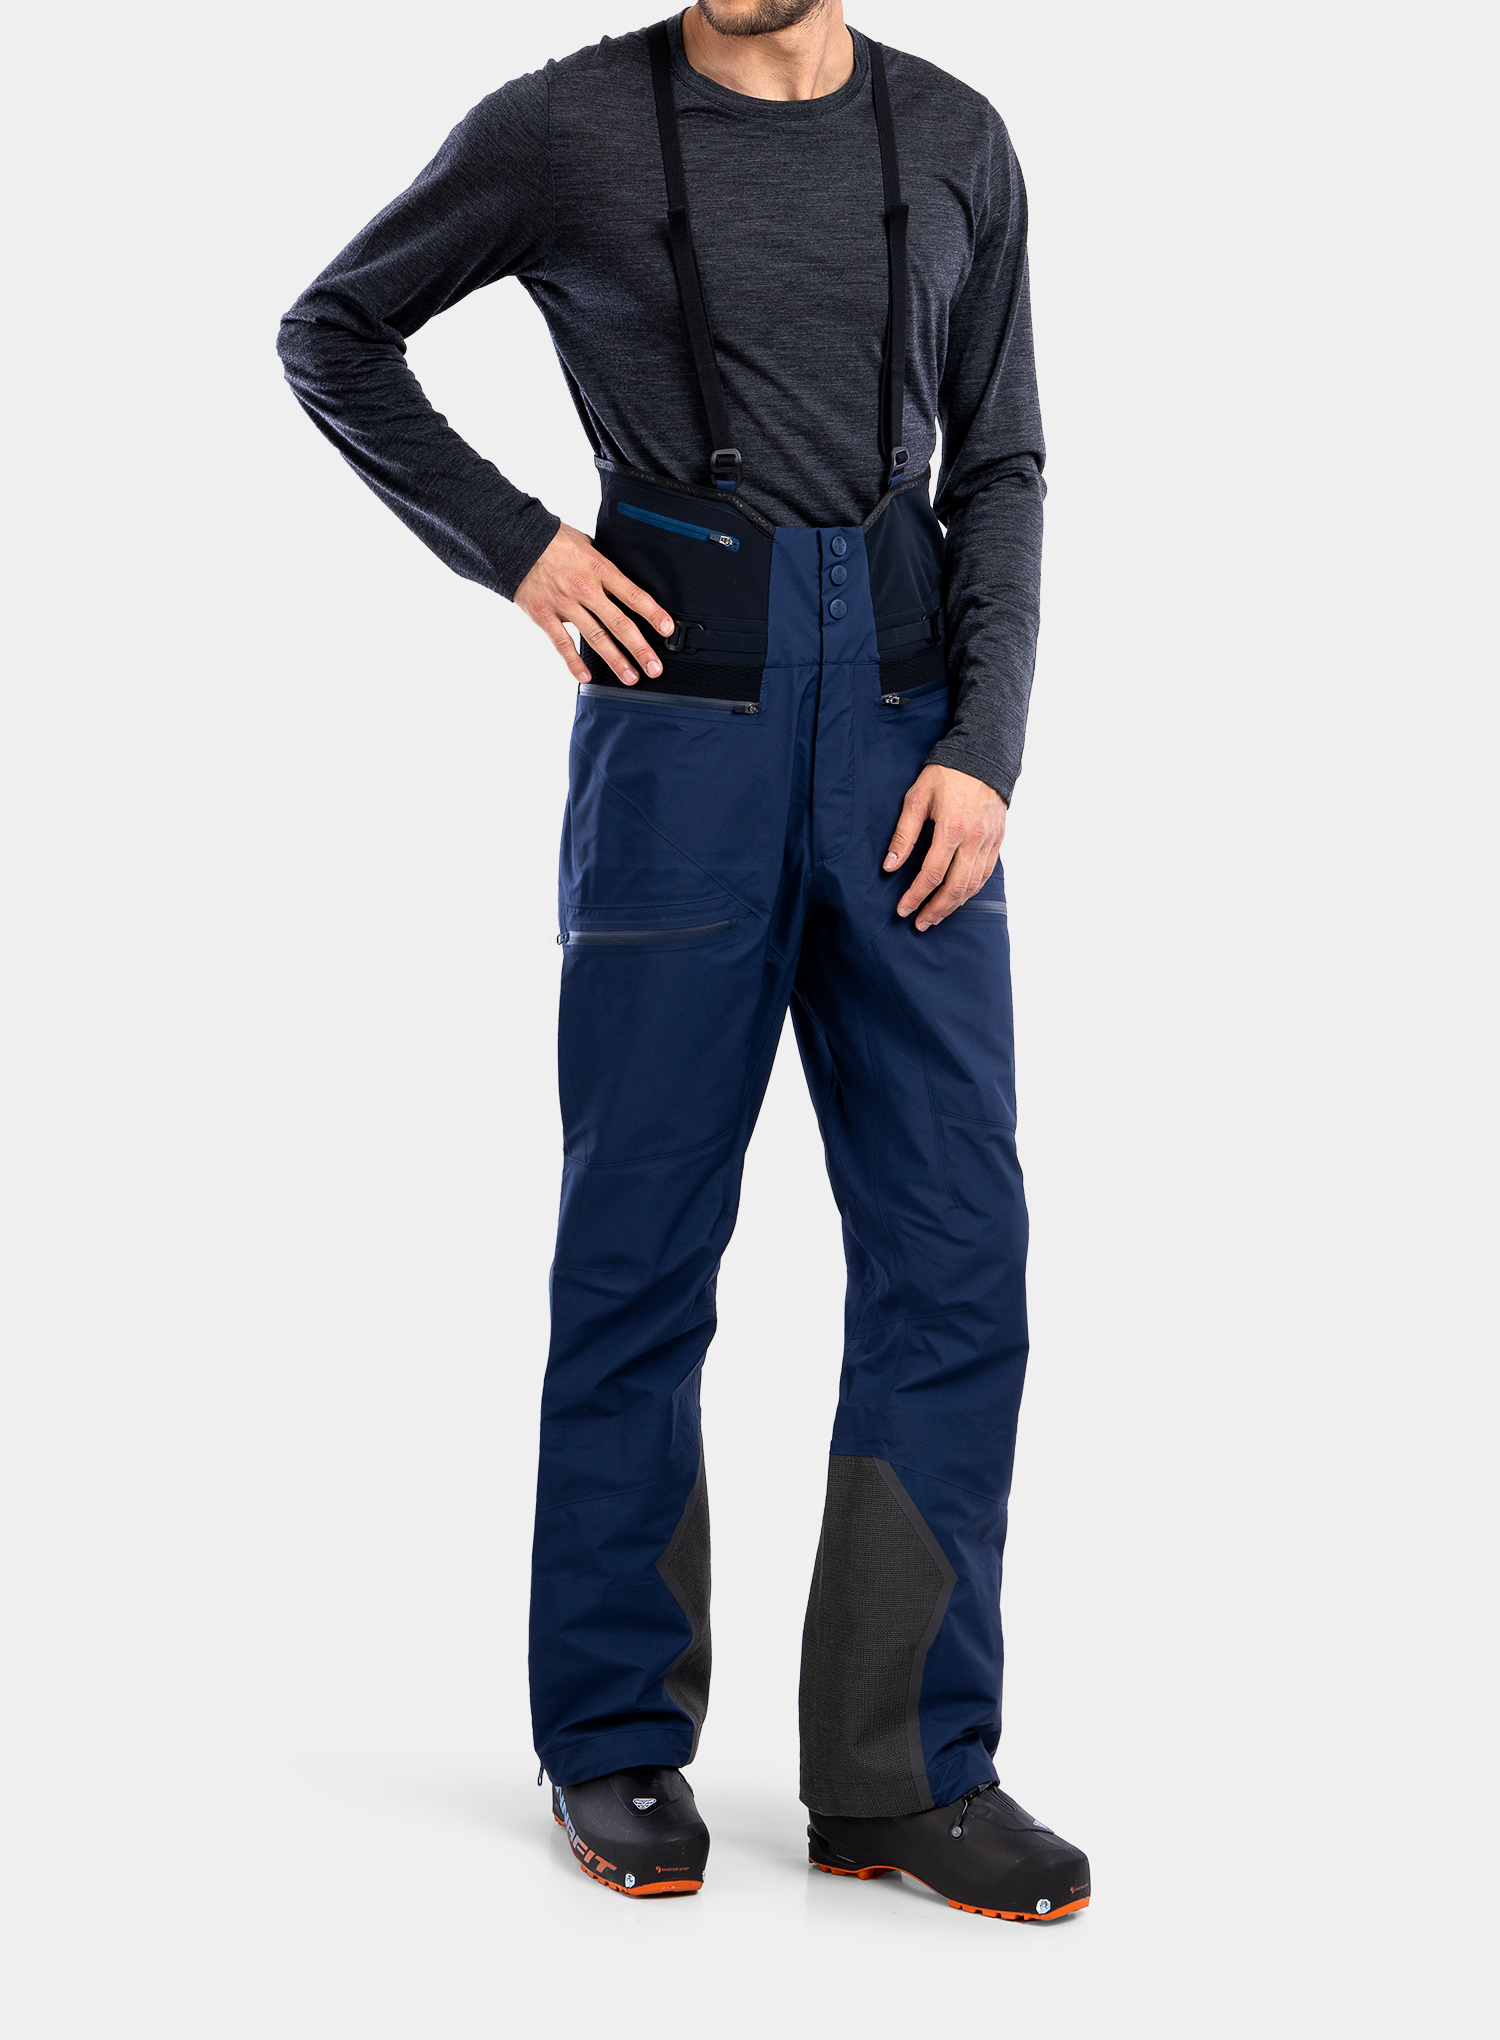 Spodnie GORE-TEX BlackYak Brangus Pants - dress blues - zdjęcie nr. 8